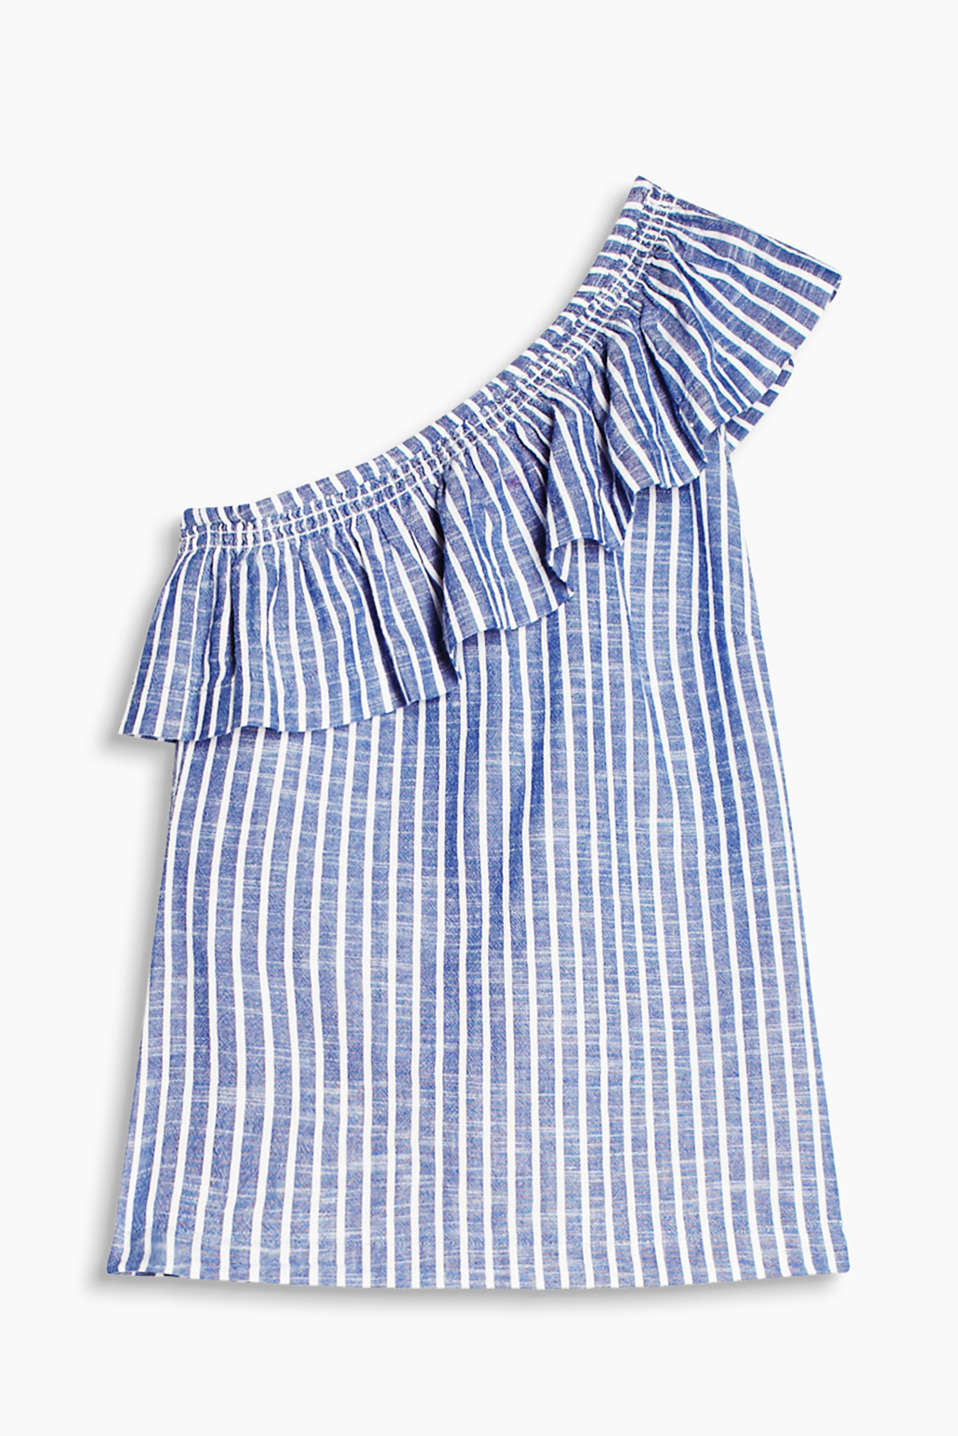 Striped one-shoulder blouse with a wide flounce, 100% cotton